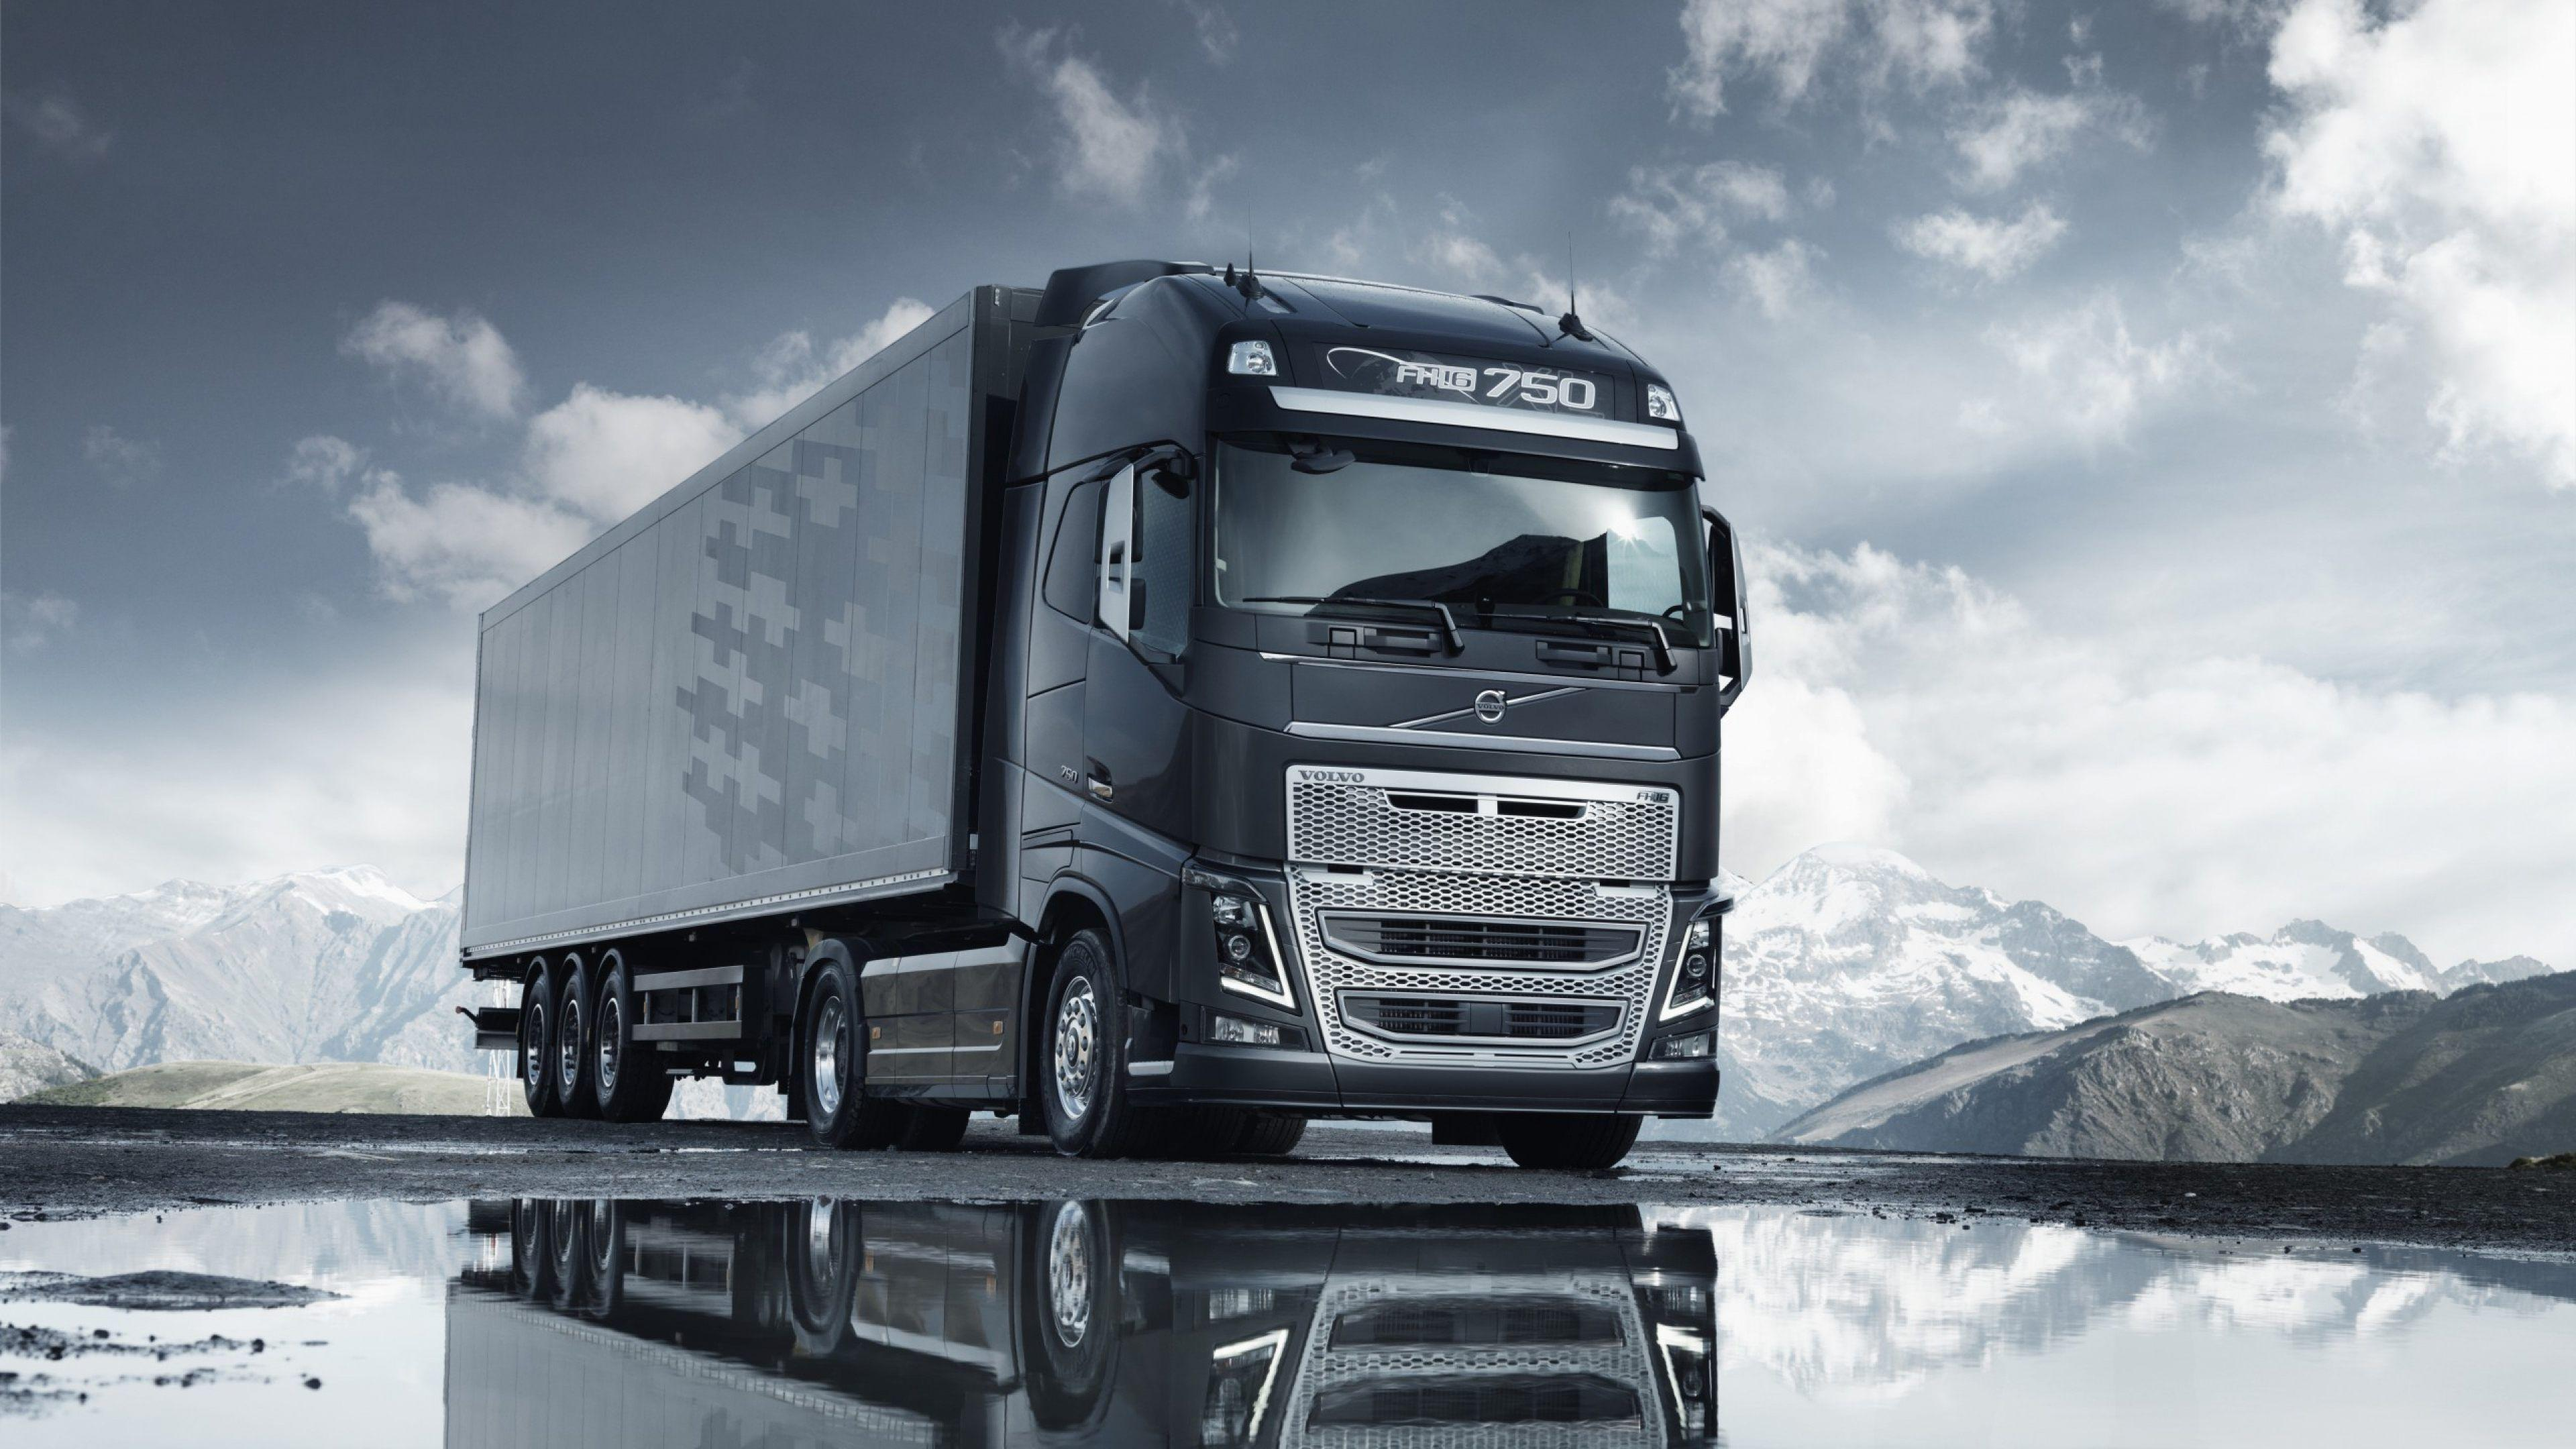 Volvo Fh16 750 Interior >> Volvo 2016 Truck Wallpapers - Wallpaper Cave